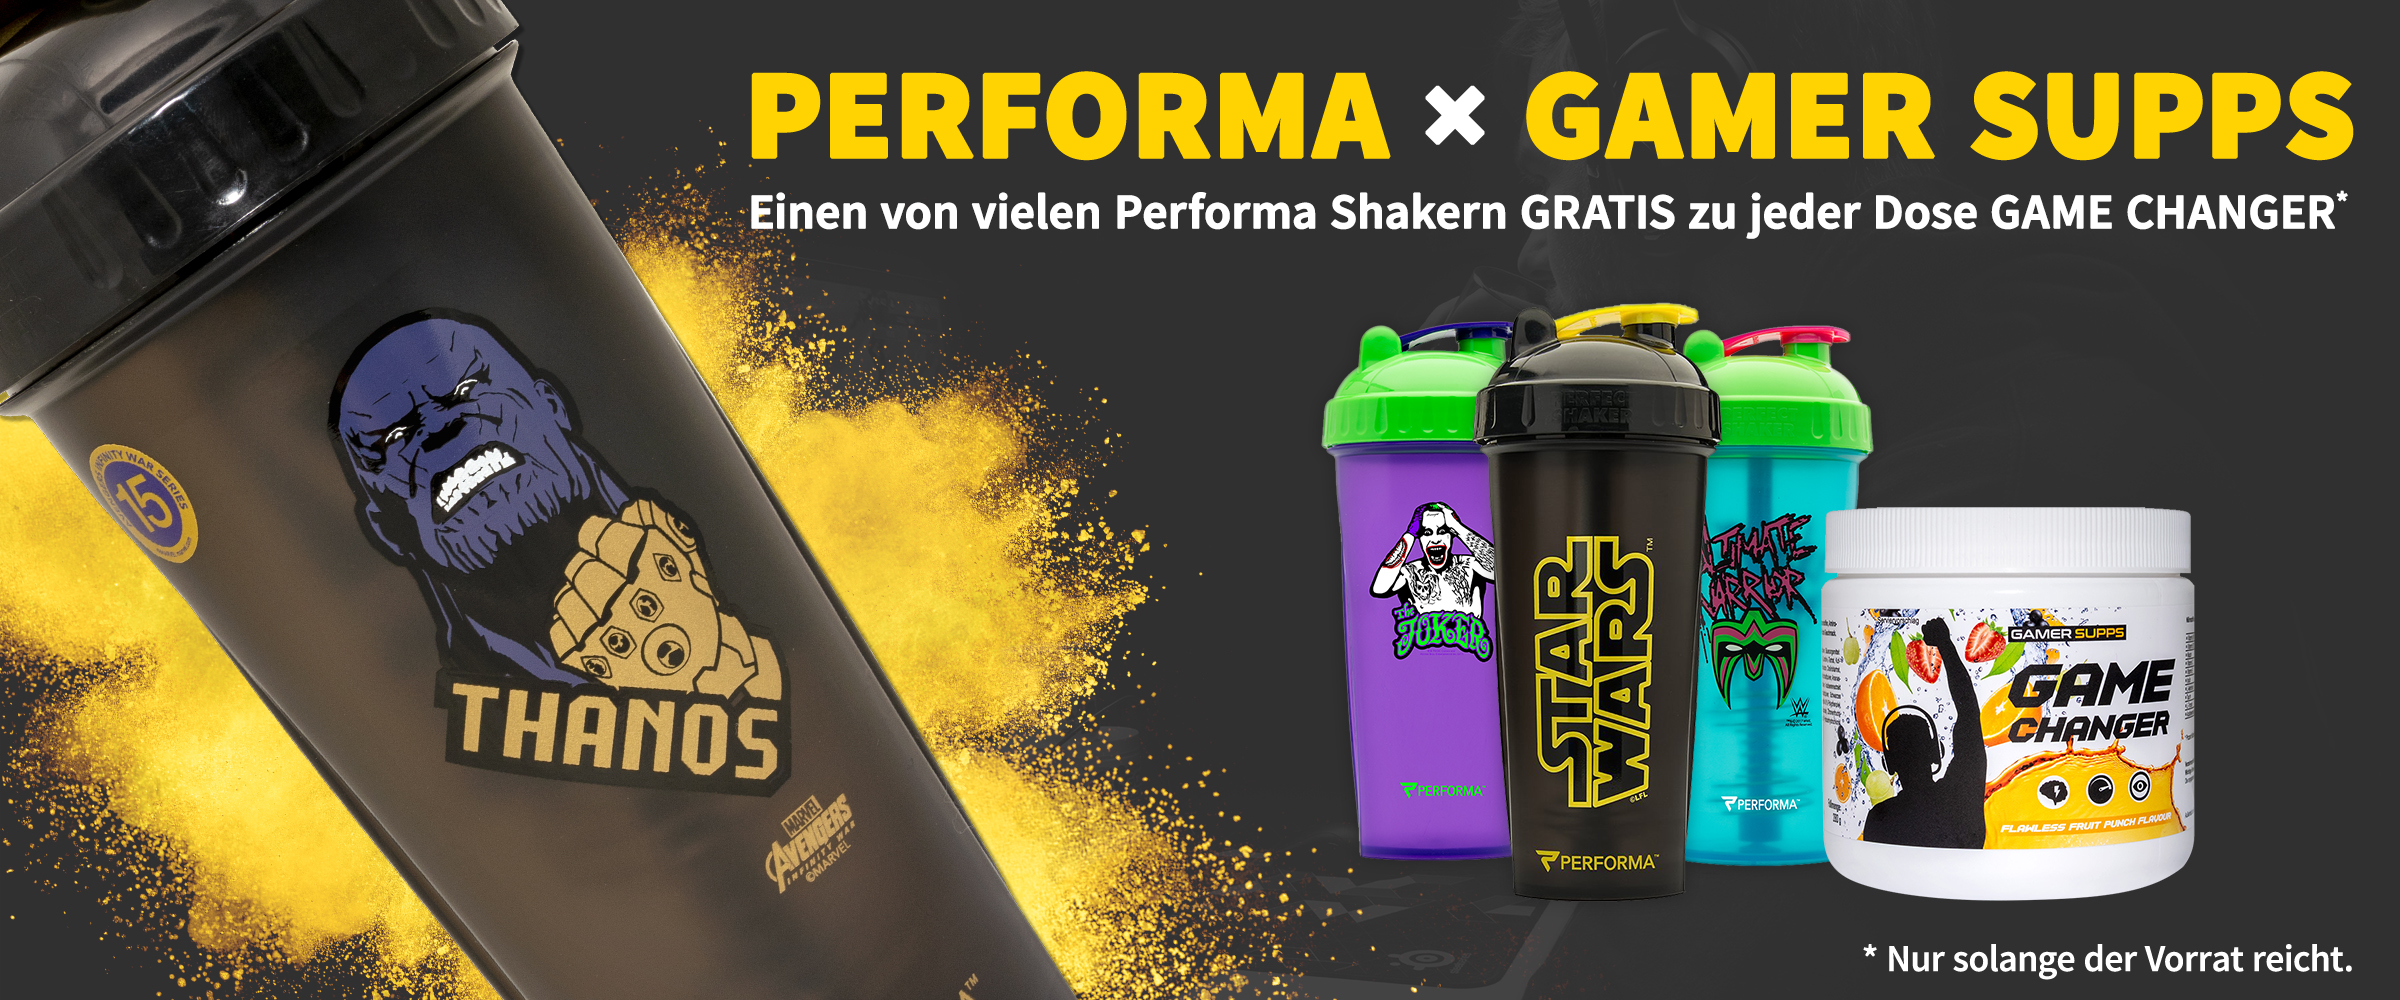 Performa x GAMER SUPPS